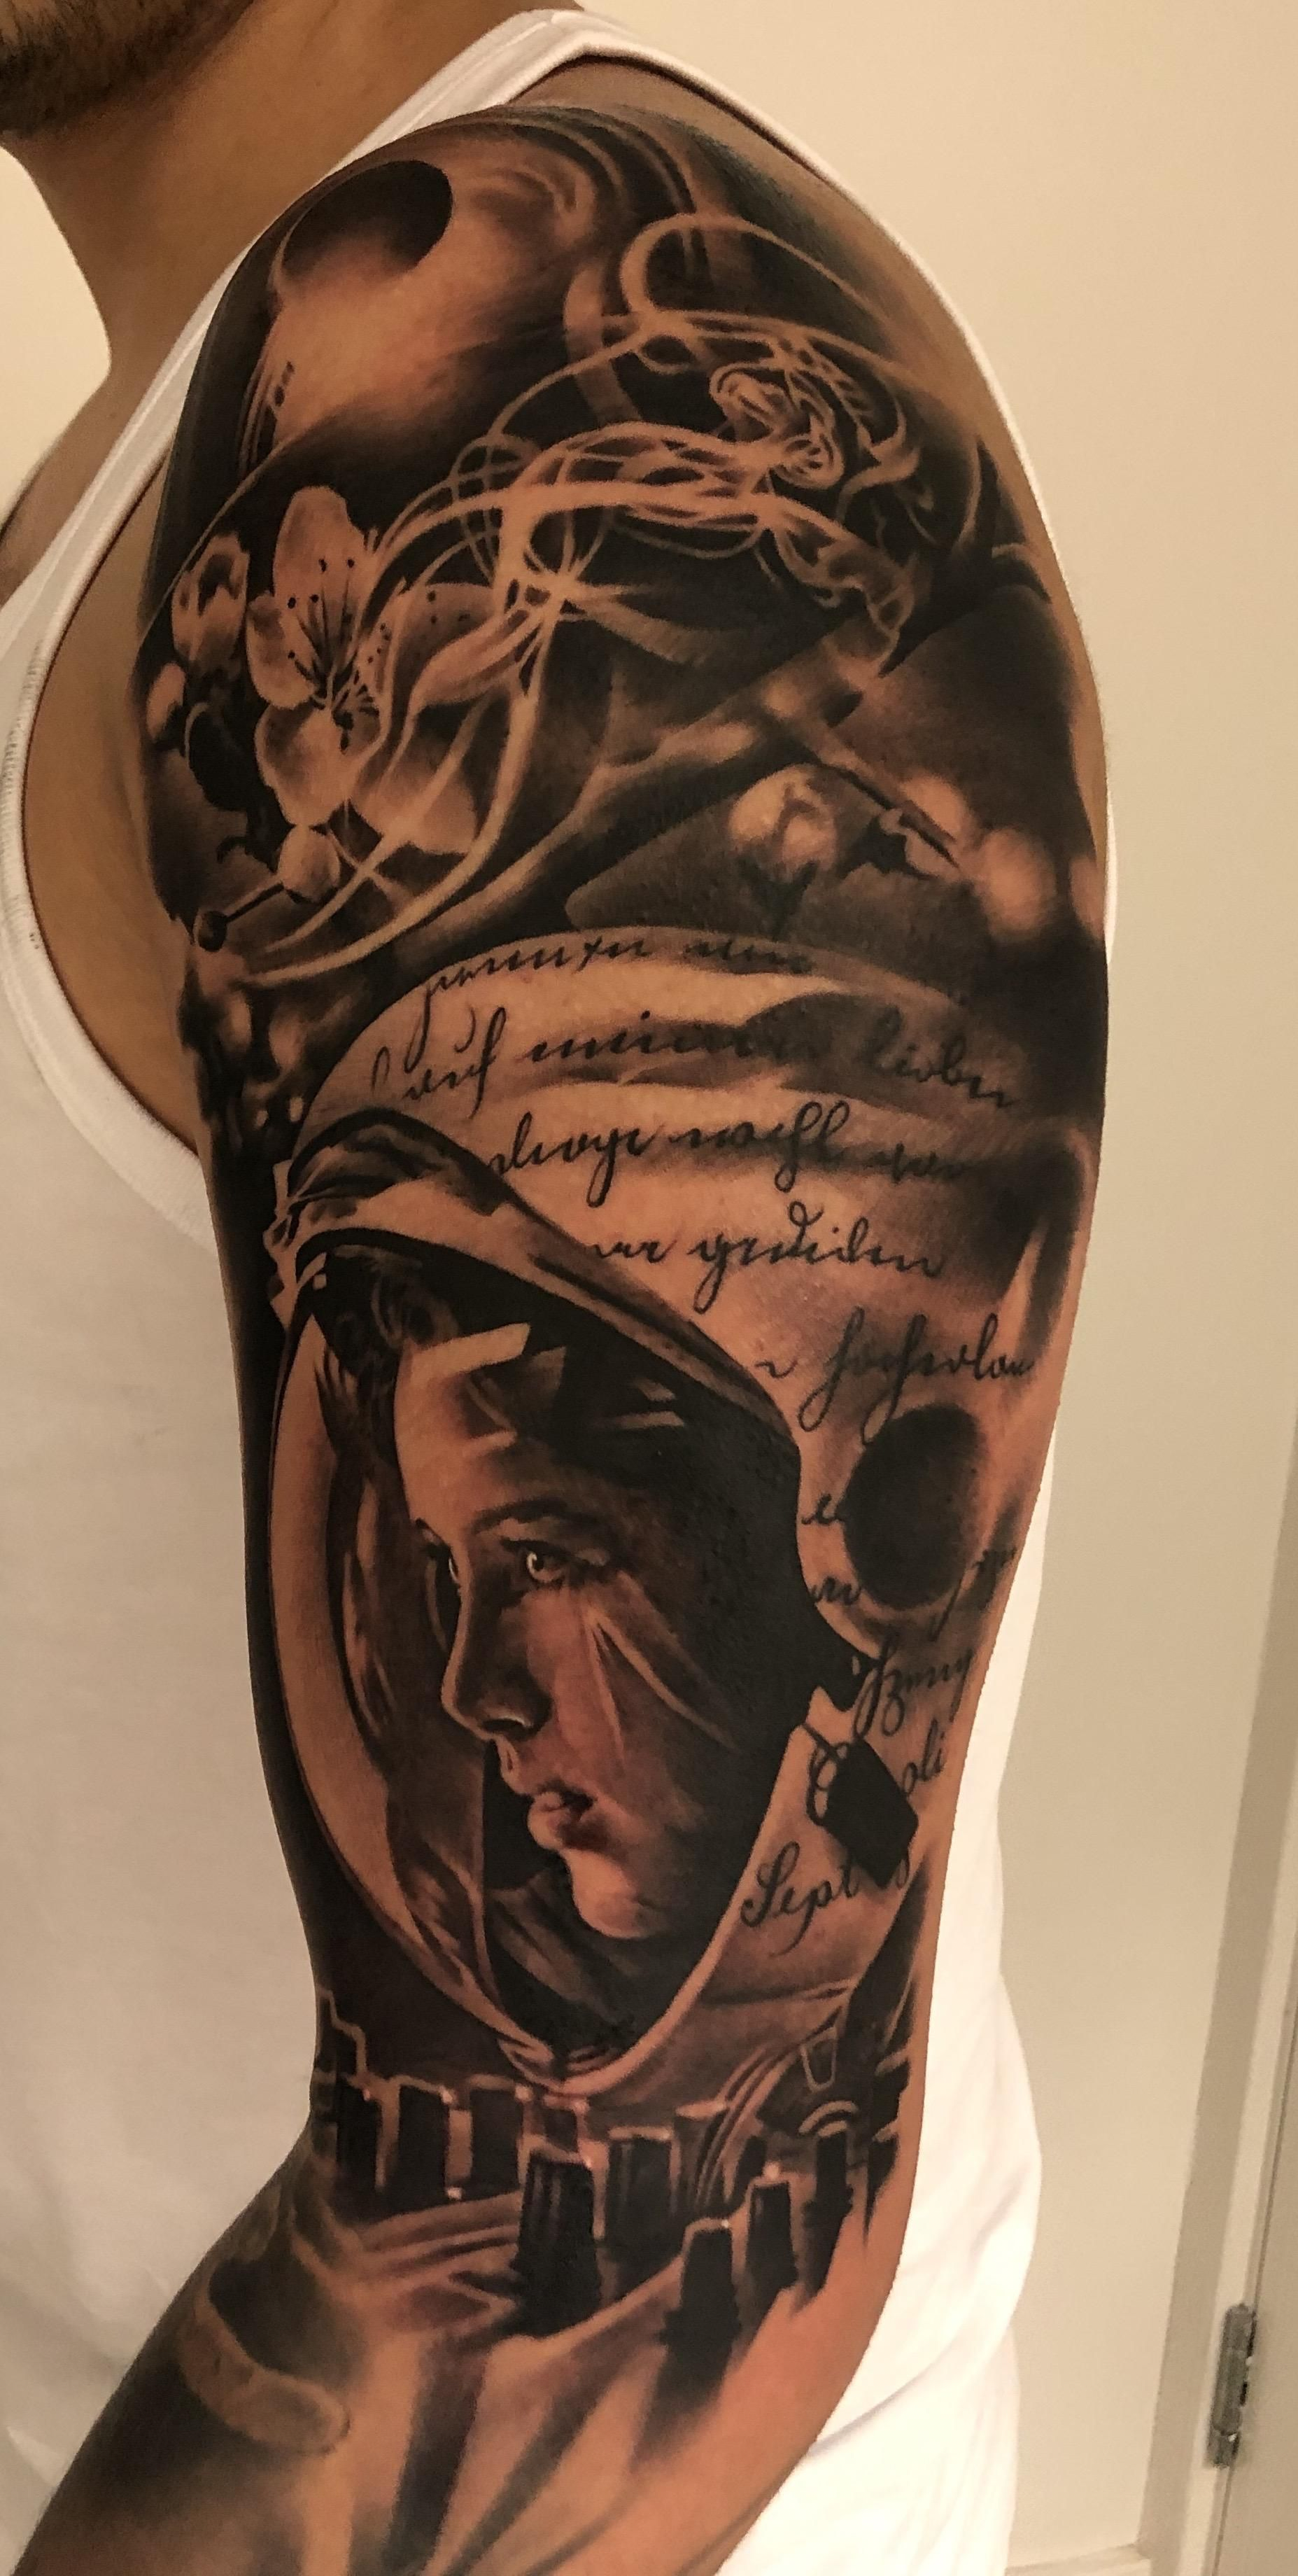 Anna Lee Fisher tattoo done by Gary Mossman in Basingstoke